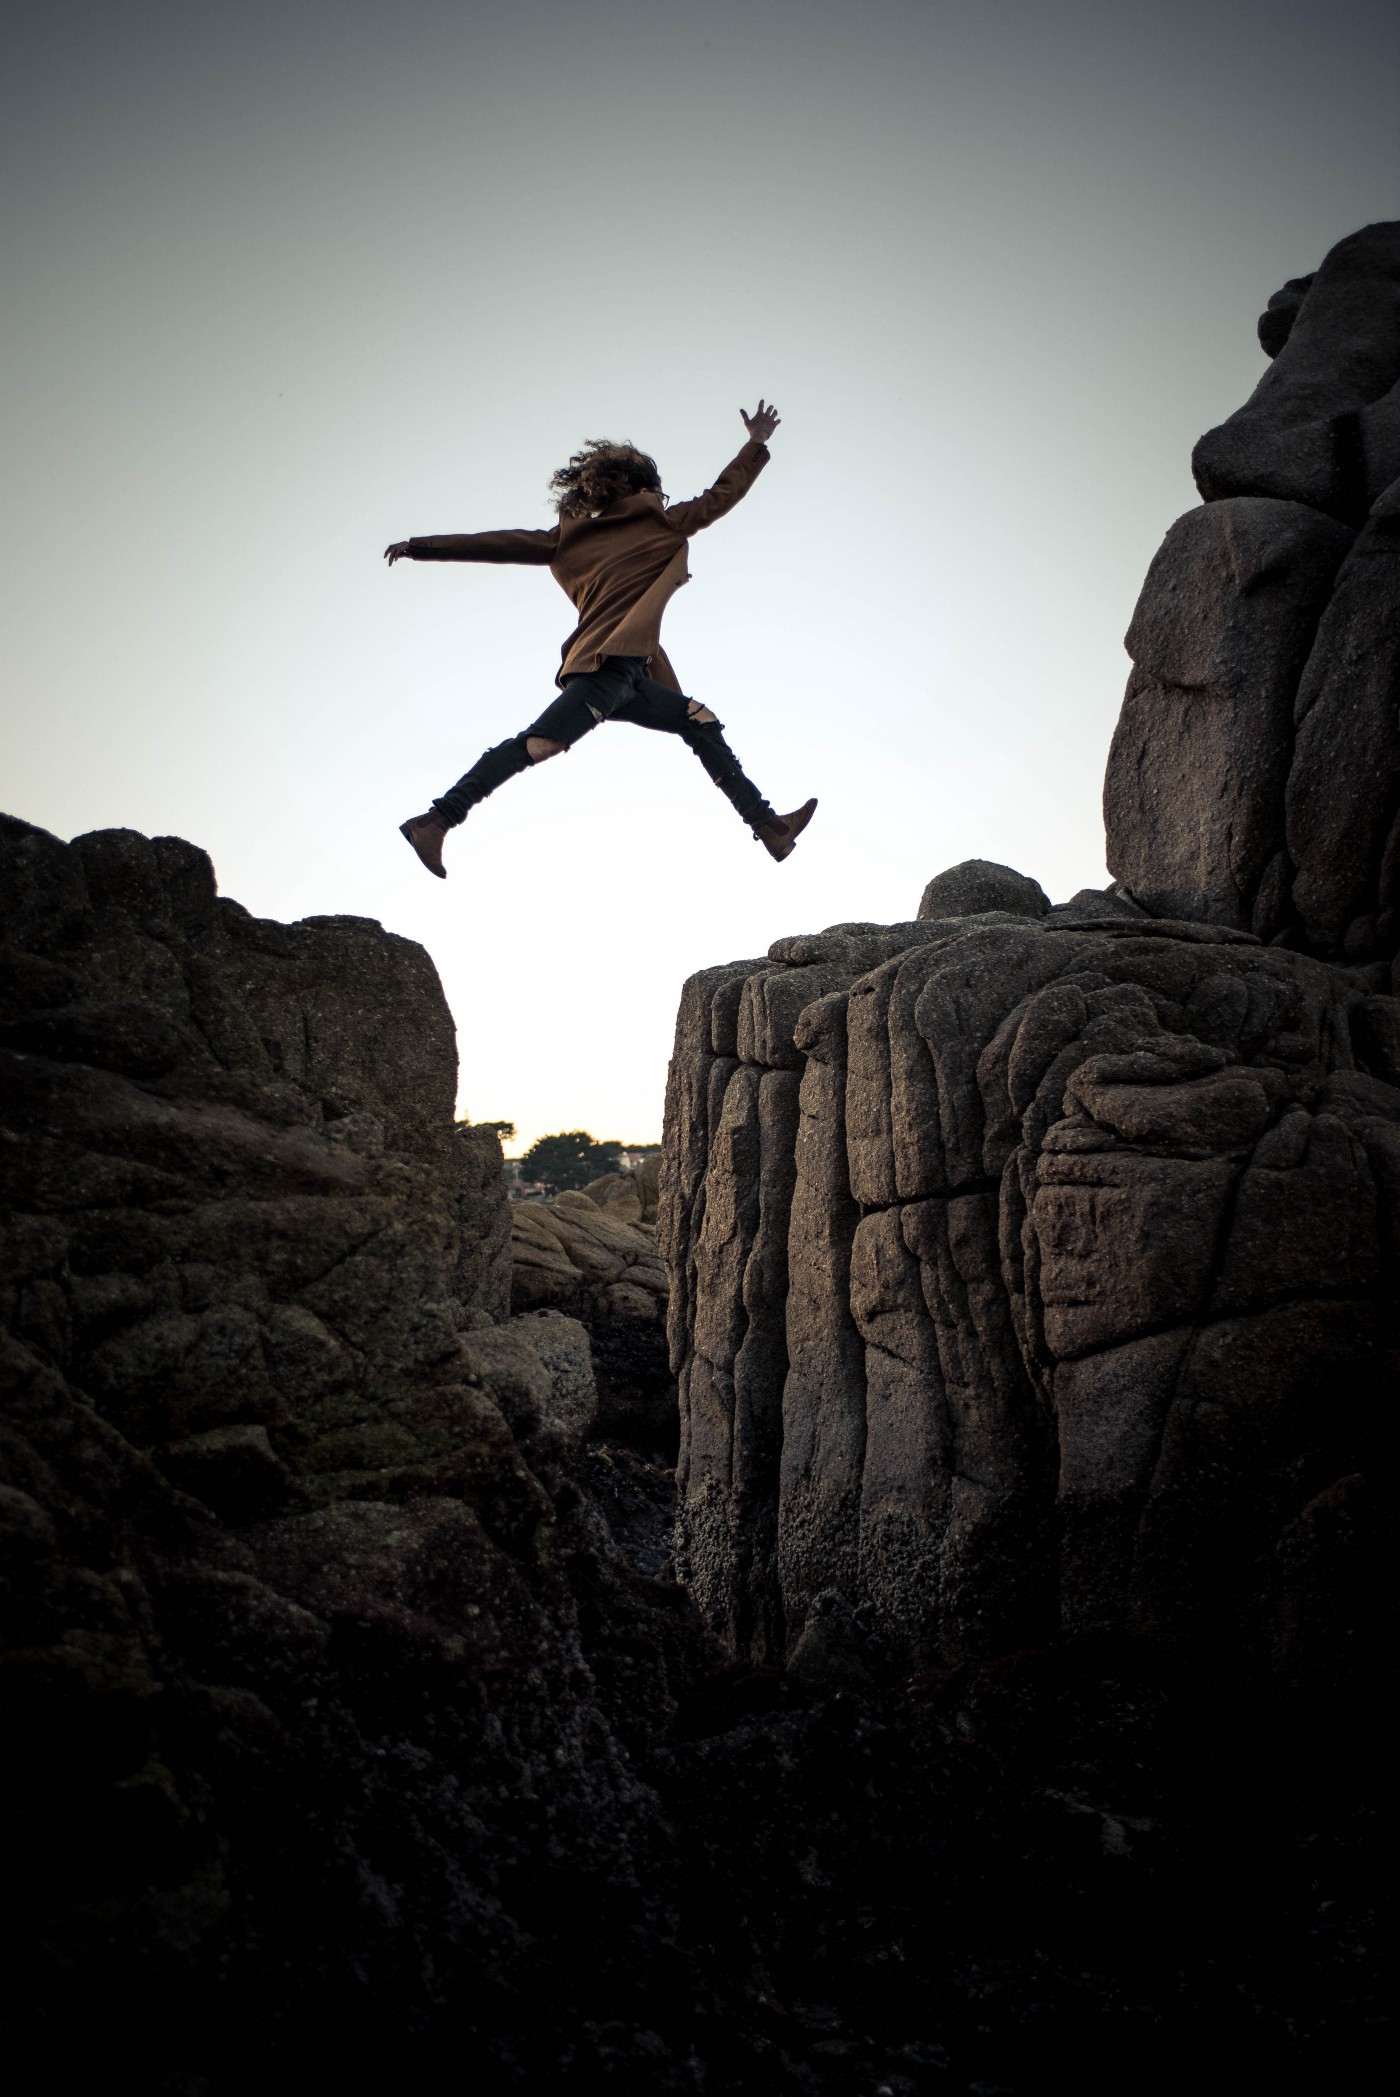 Woman in mid-air jumping between two cliffs